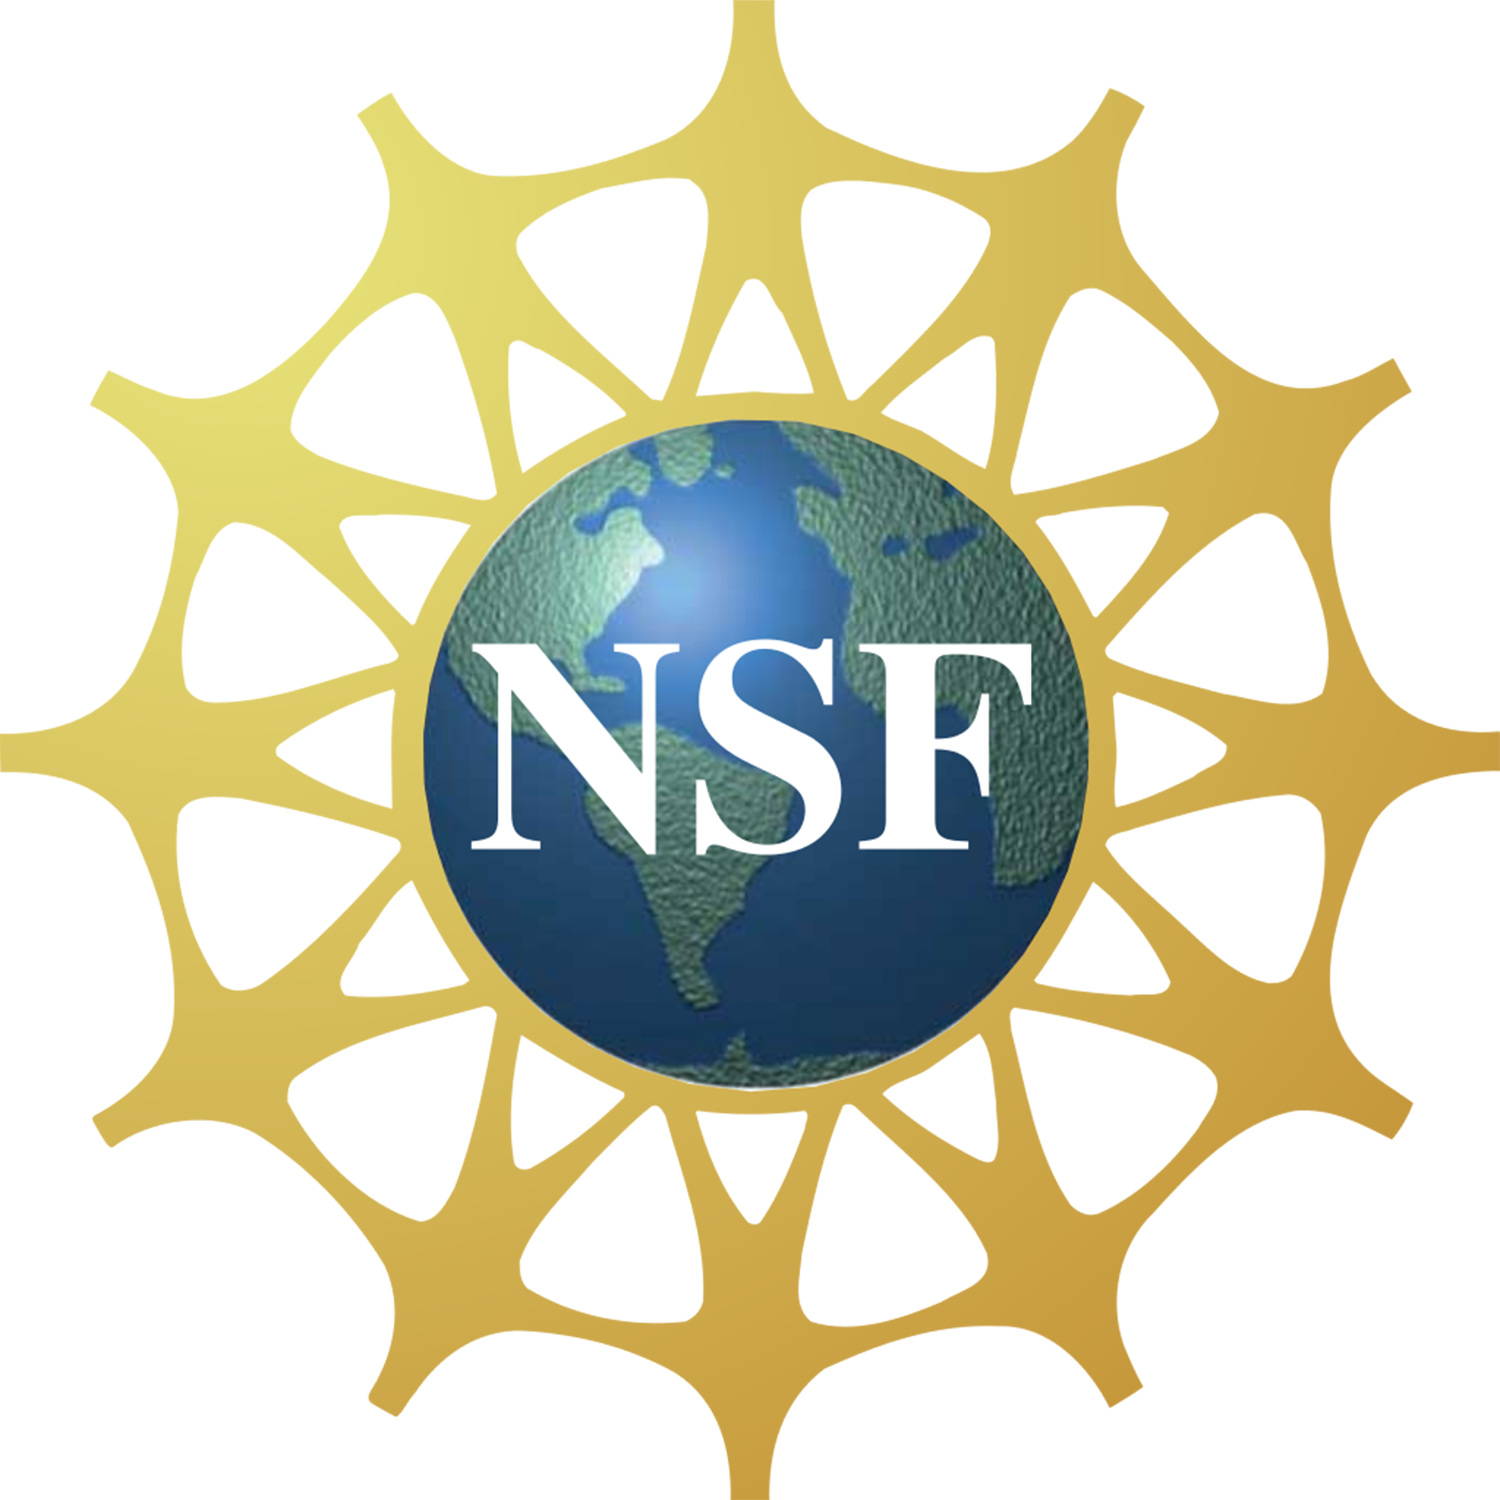 NSF, National Science Foundation